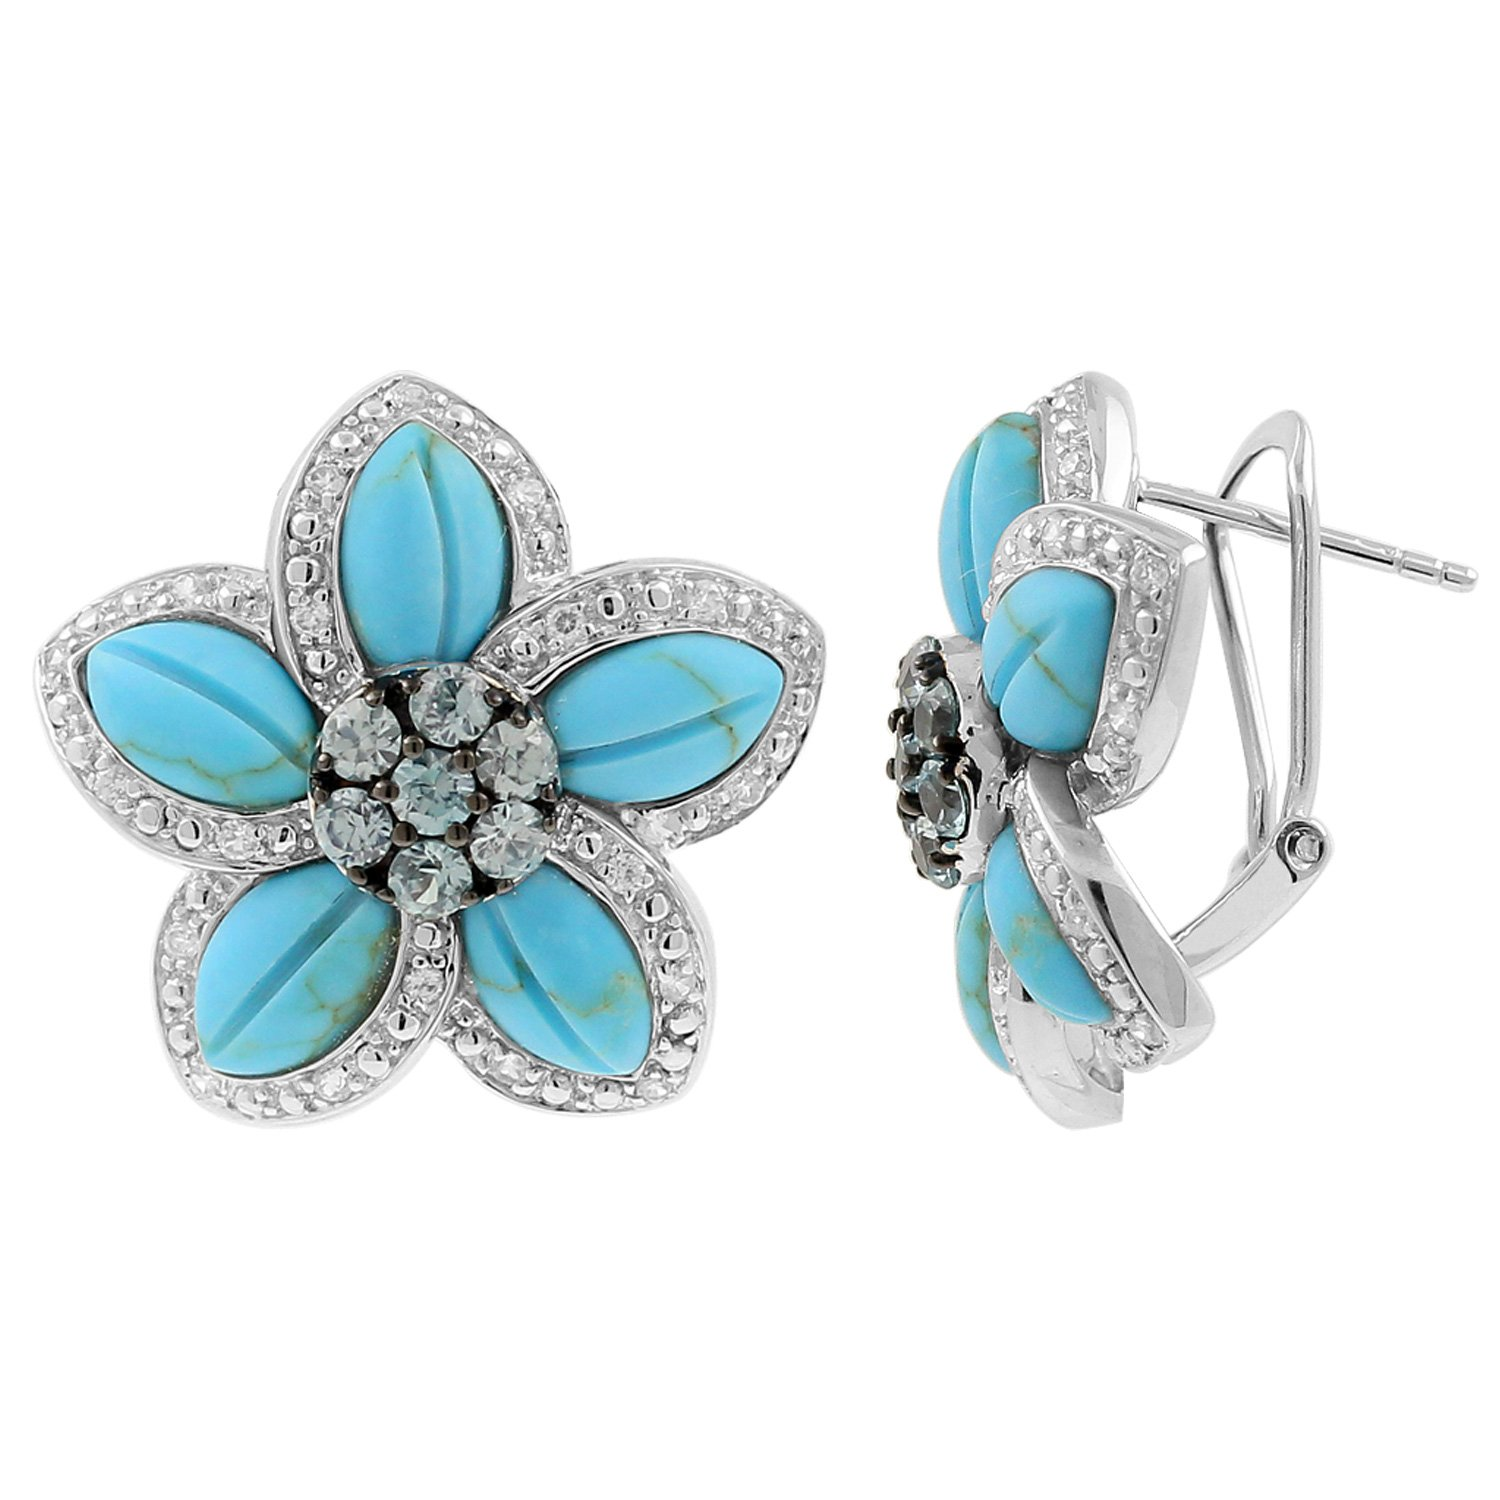 Blue Turquoise and Zirconium Cluster Floral Earring in 925 Silver